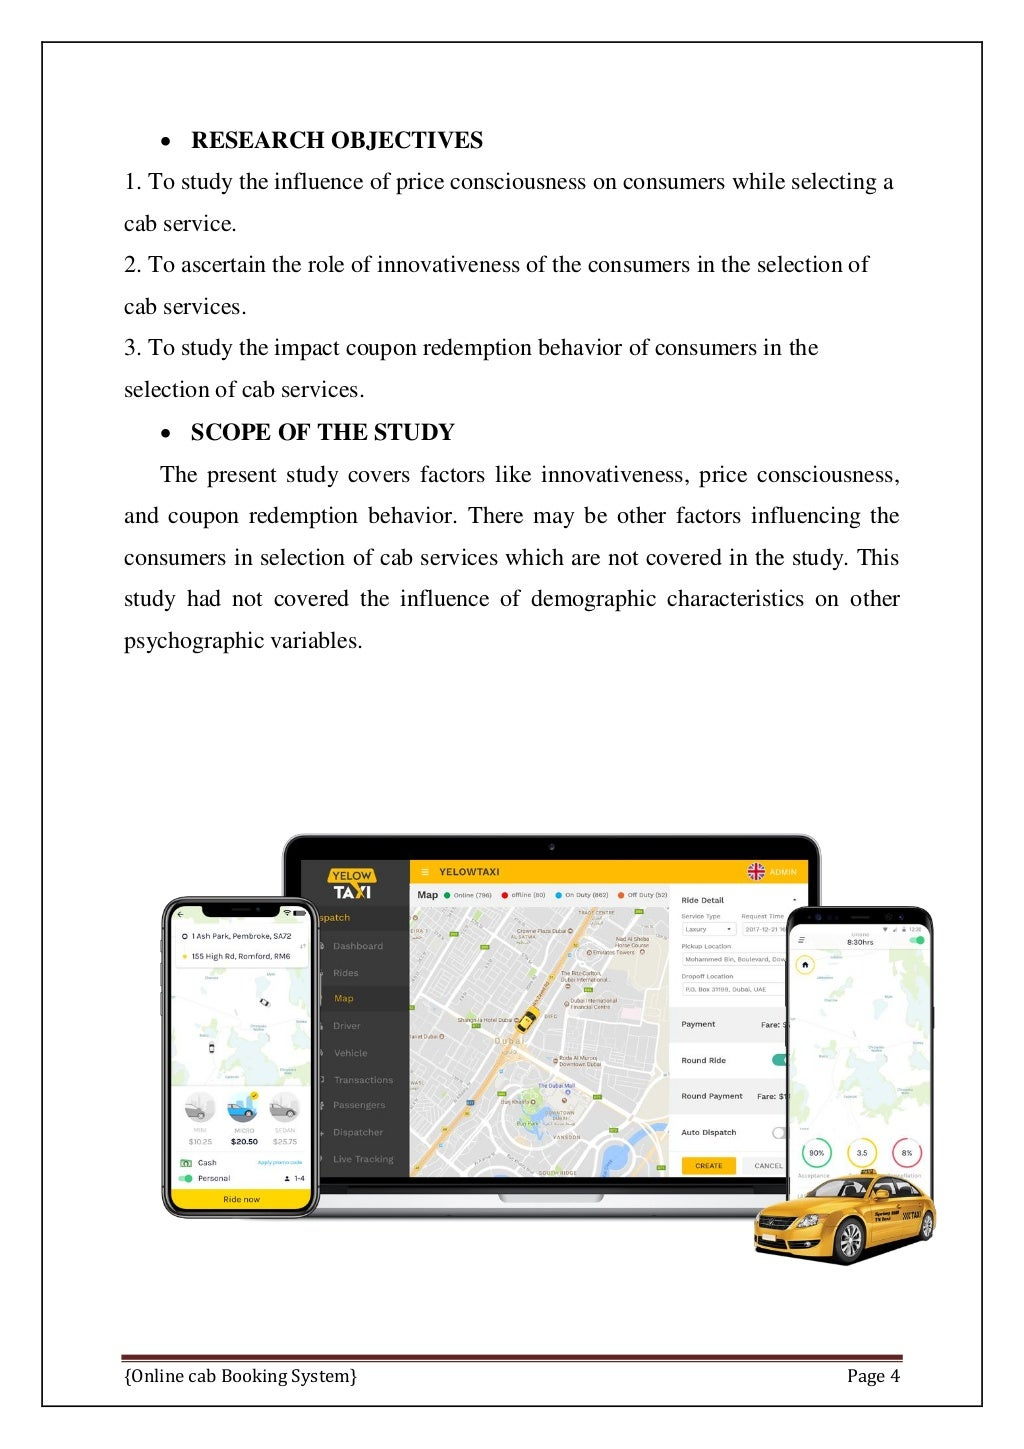 Online Cab Booking System Final Report page 11